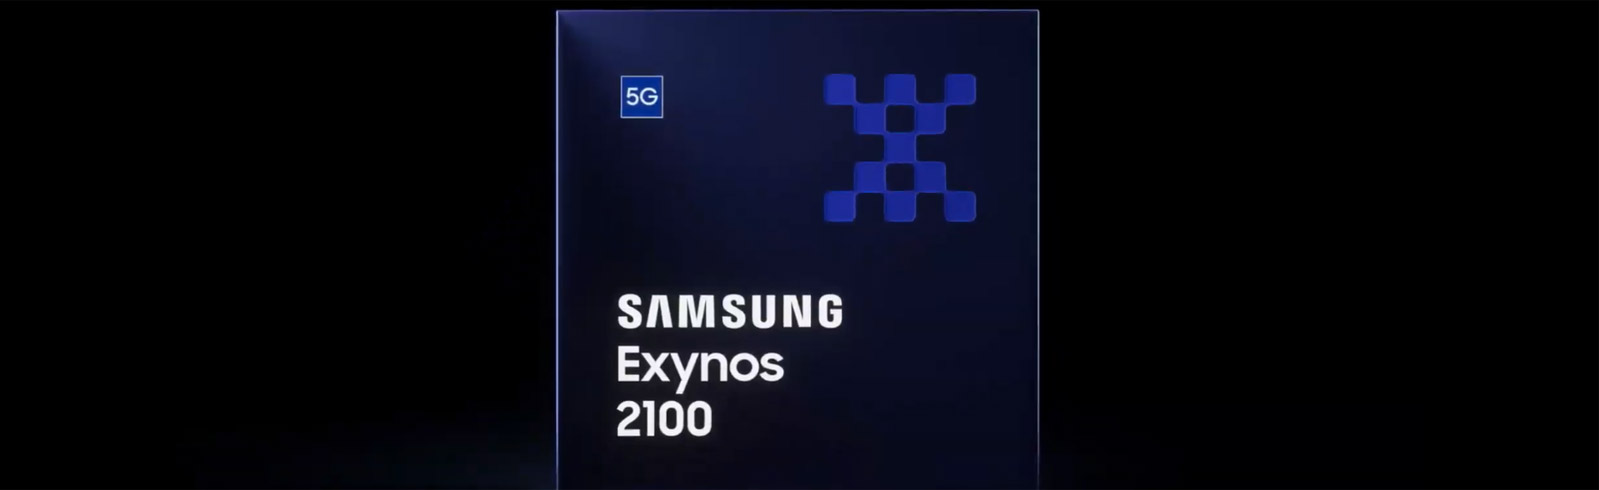 Samsung unveils its flagship Exynos 2100 chipset that will power the Galaxy S21 series